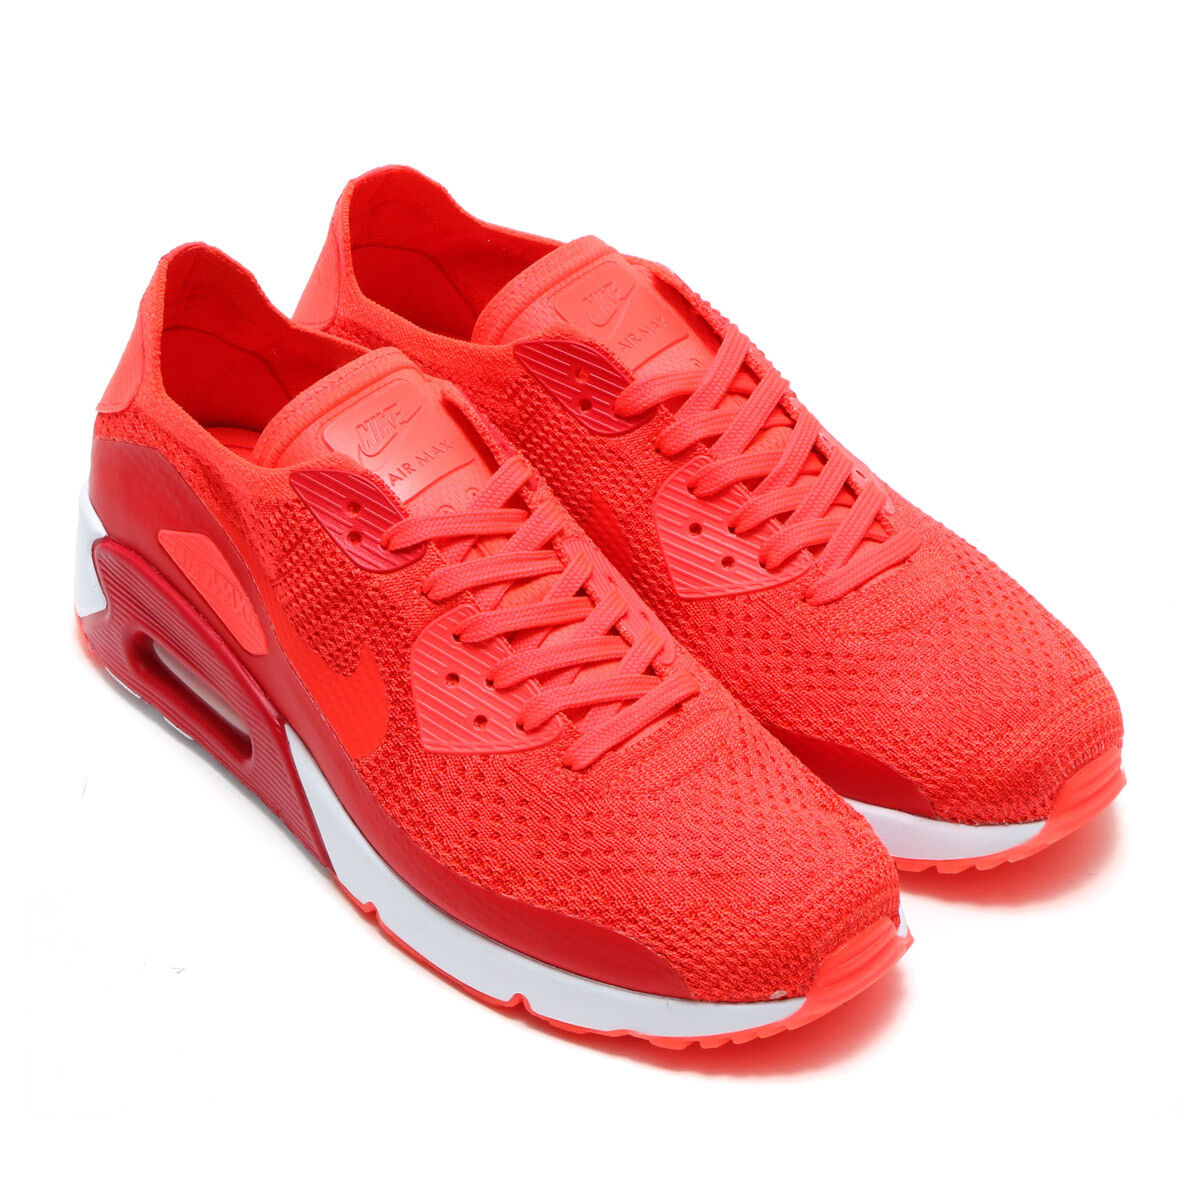 NEW 875943 600 MENS NIKE AIR MAX 90 ULTRA 2.0 FLYKNIT SHOES!! BRIGHT CRIMSON